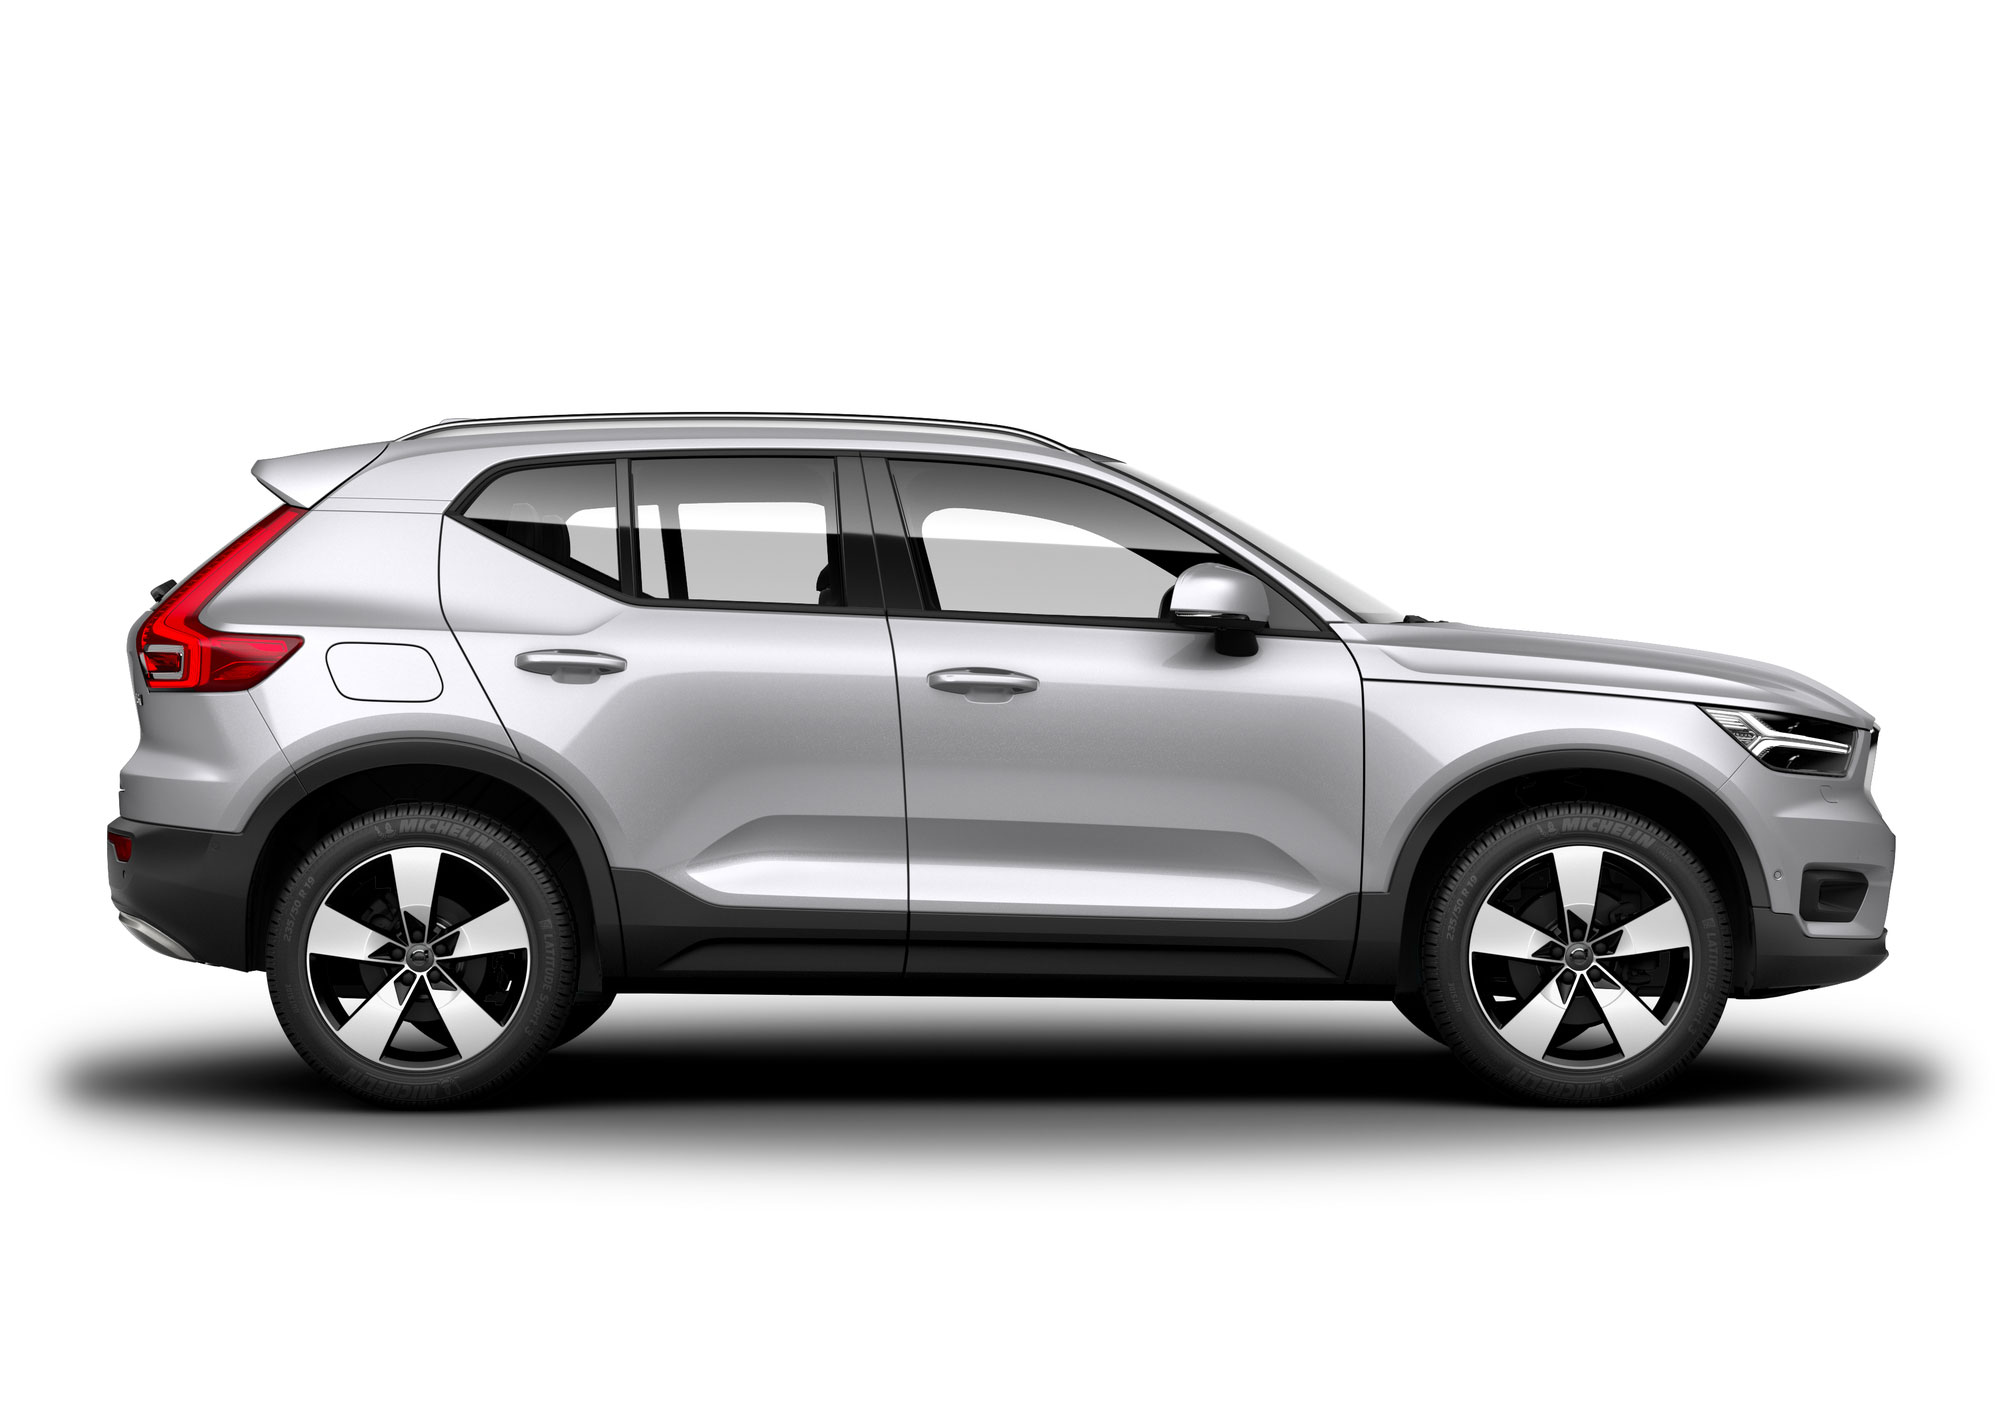 Volvo XC40 - Your Compact Crossover SUV - Capitol Motors